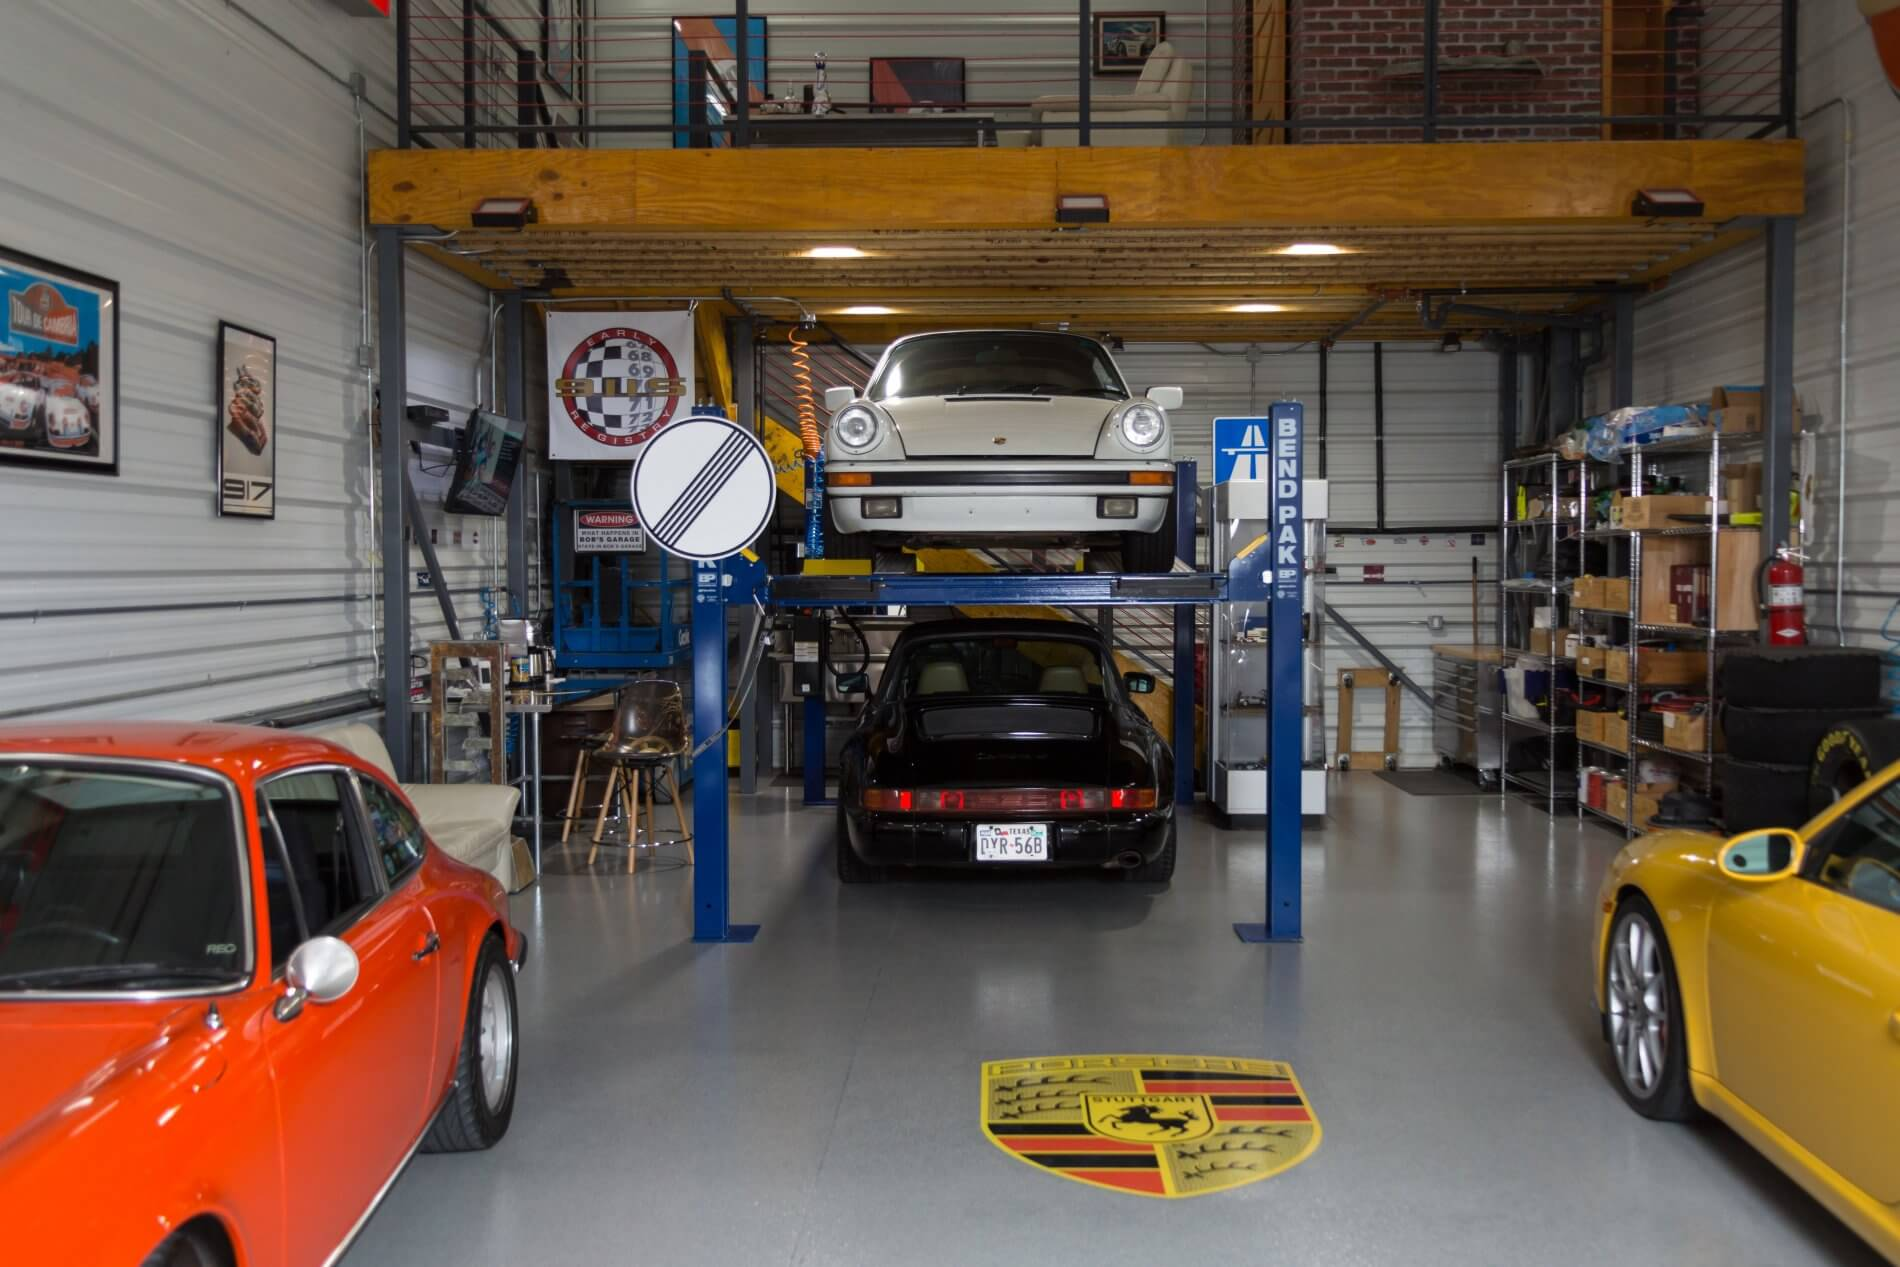 Garages of texas motor garage for sale solutioingenieria Gallery